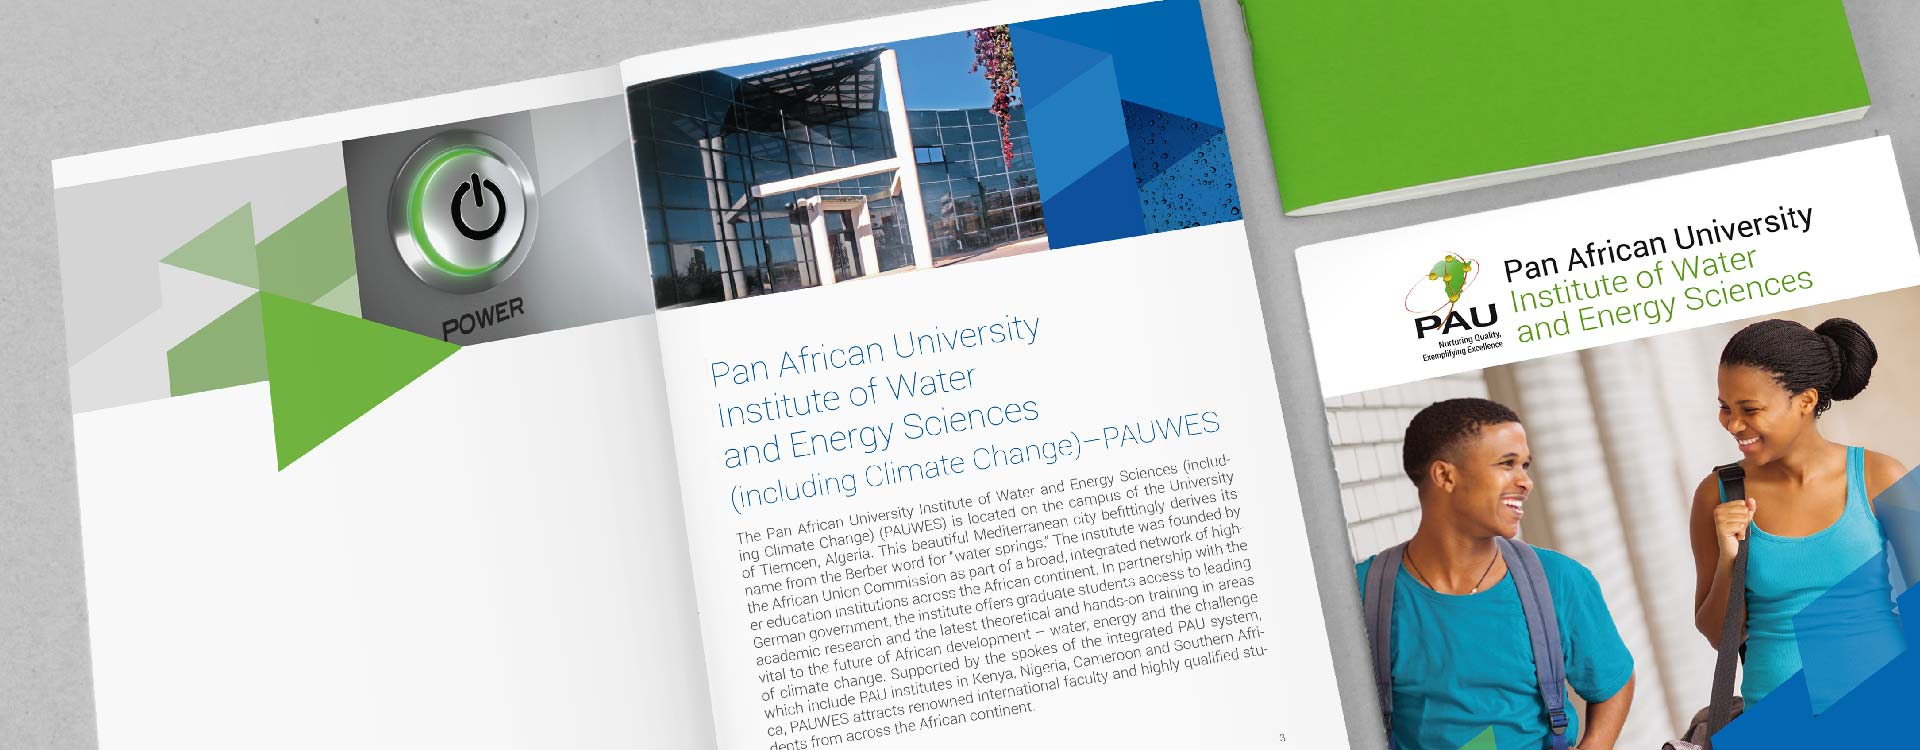 Titel- und Innenseite der Broschüre der Pan African University, Institute of Water and Energy Sciences PAUWES; Design: Kattrin Richter | Büro für Grafikdesign